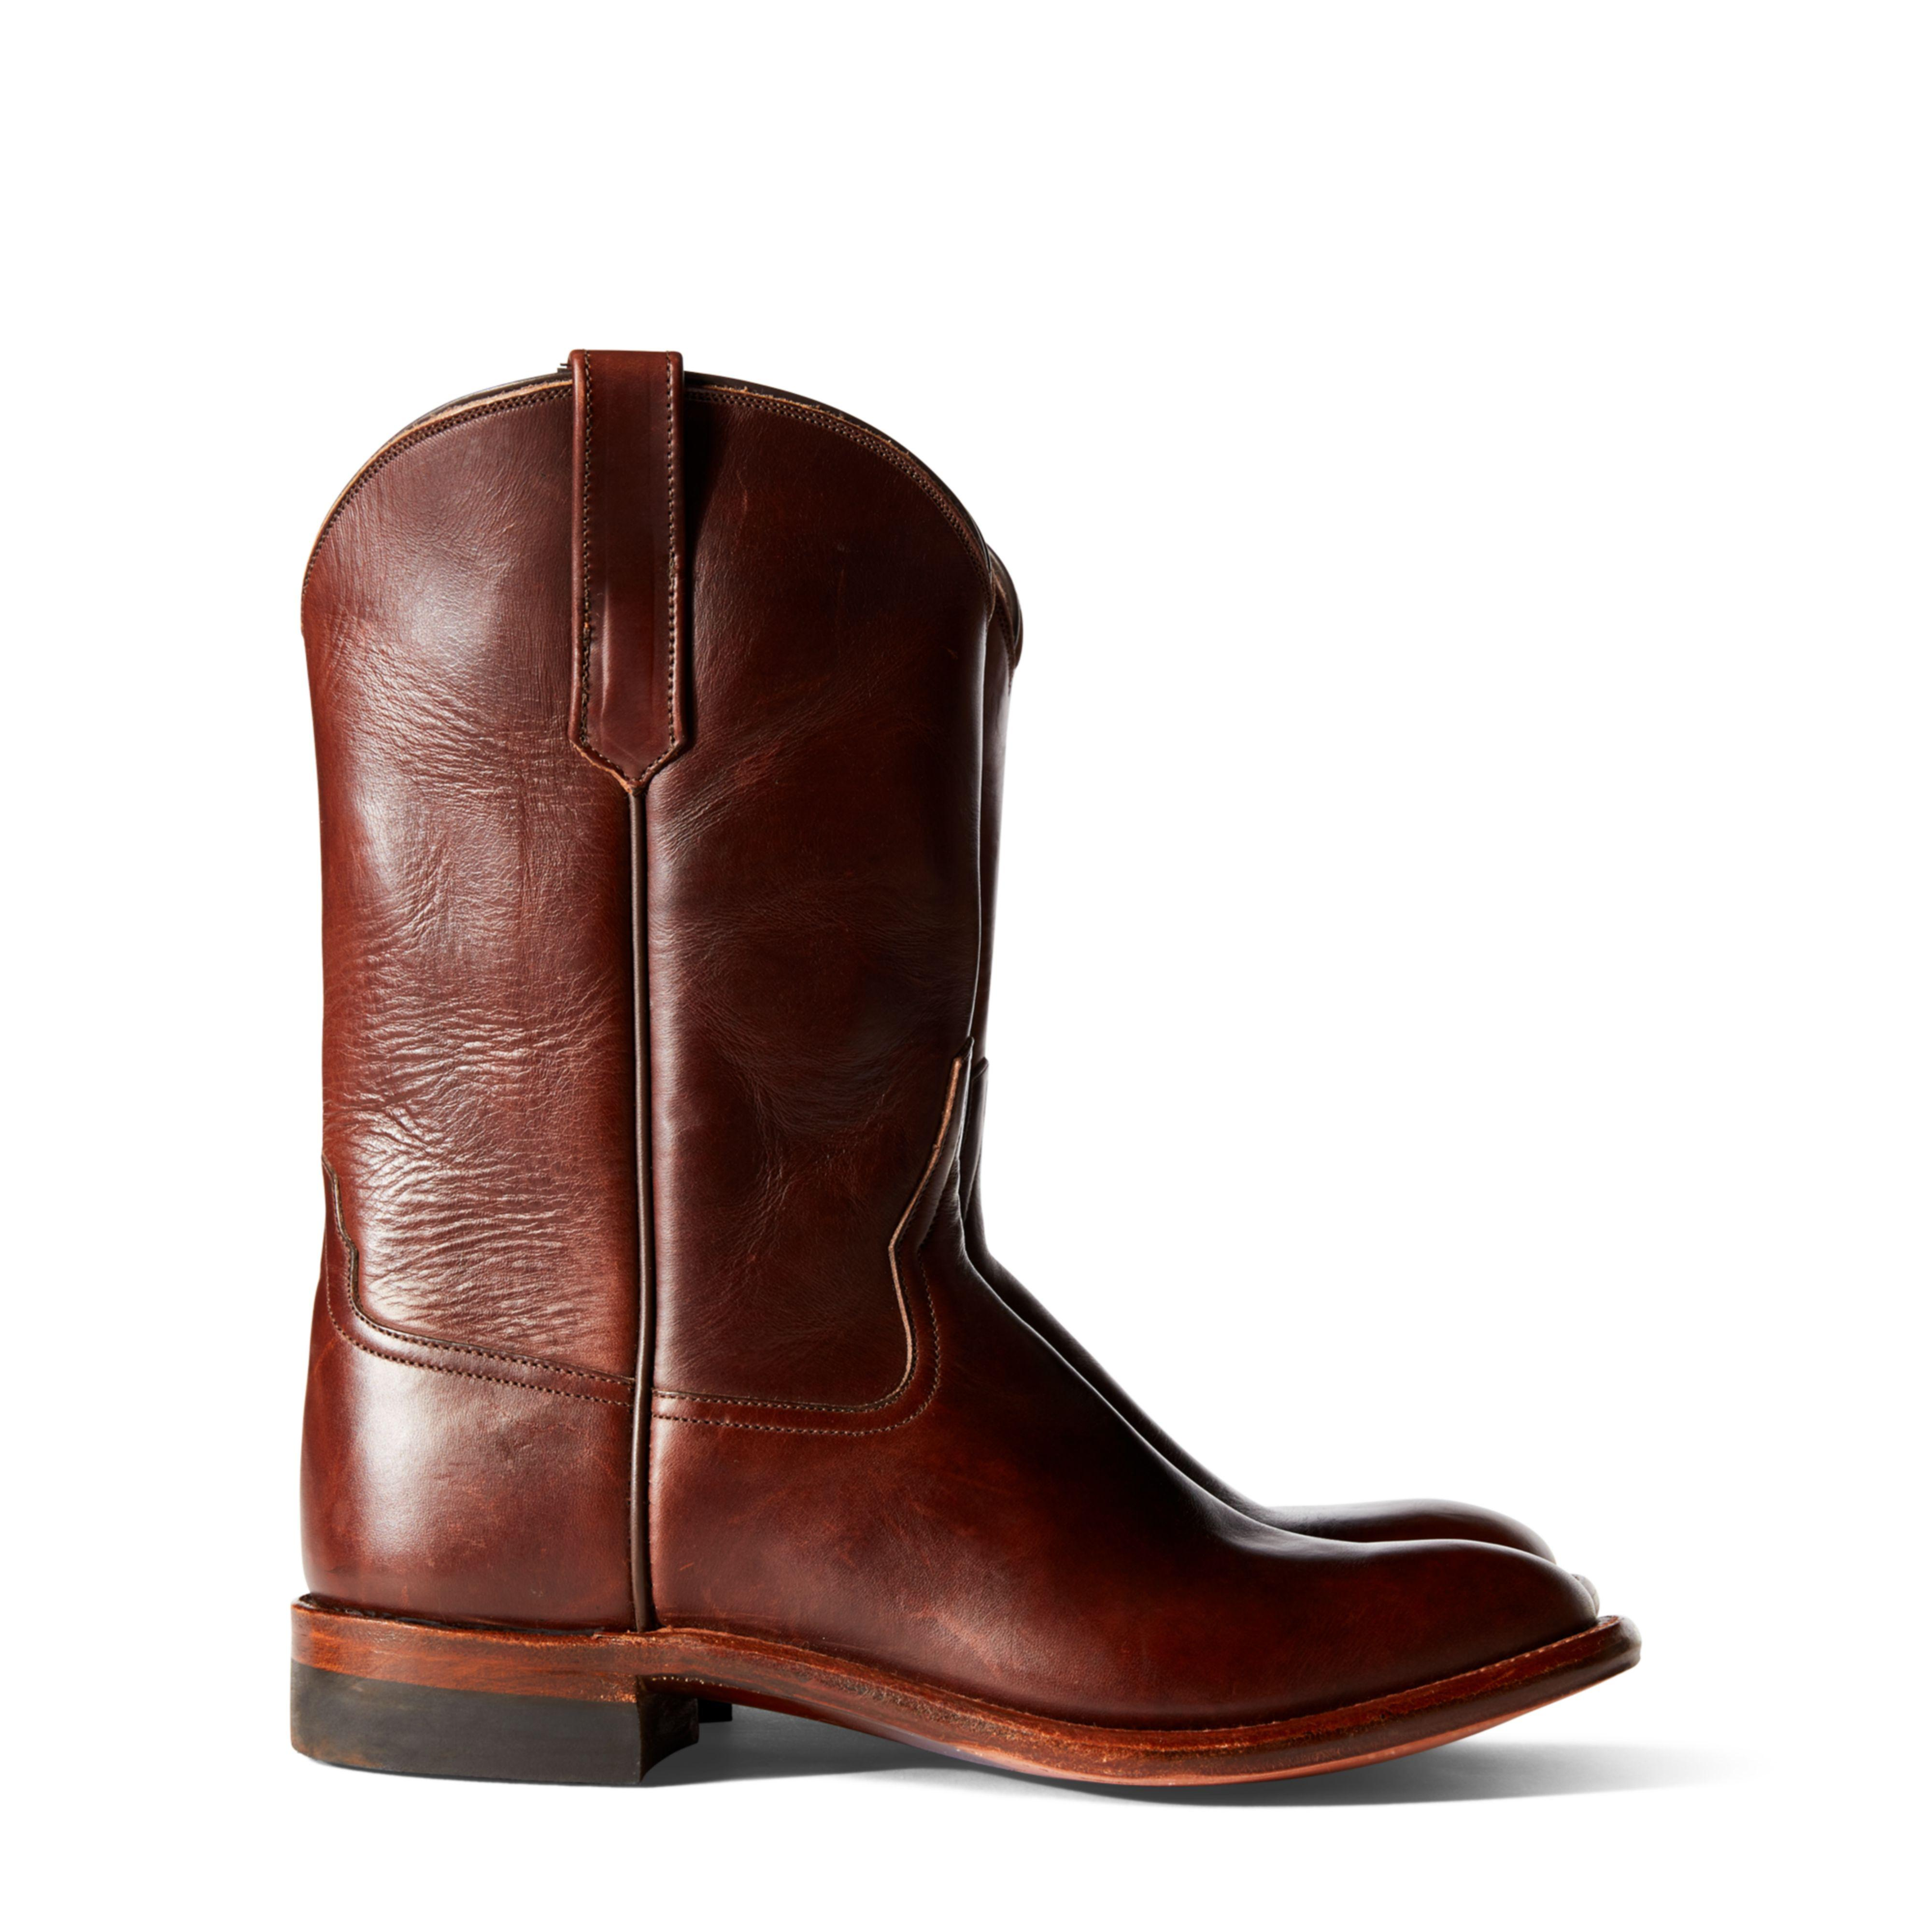 Lucchese Bootmaker Jonah Roper Ankle Boot(Men's) -Espresso Maracca Suede Calf Cheap Sale Prices YH3GFii